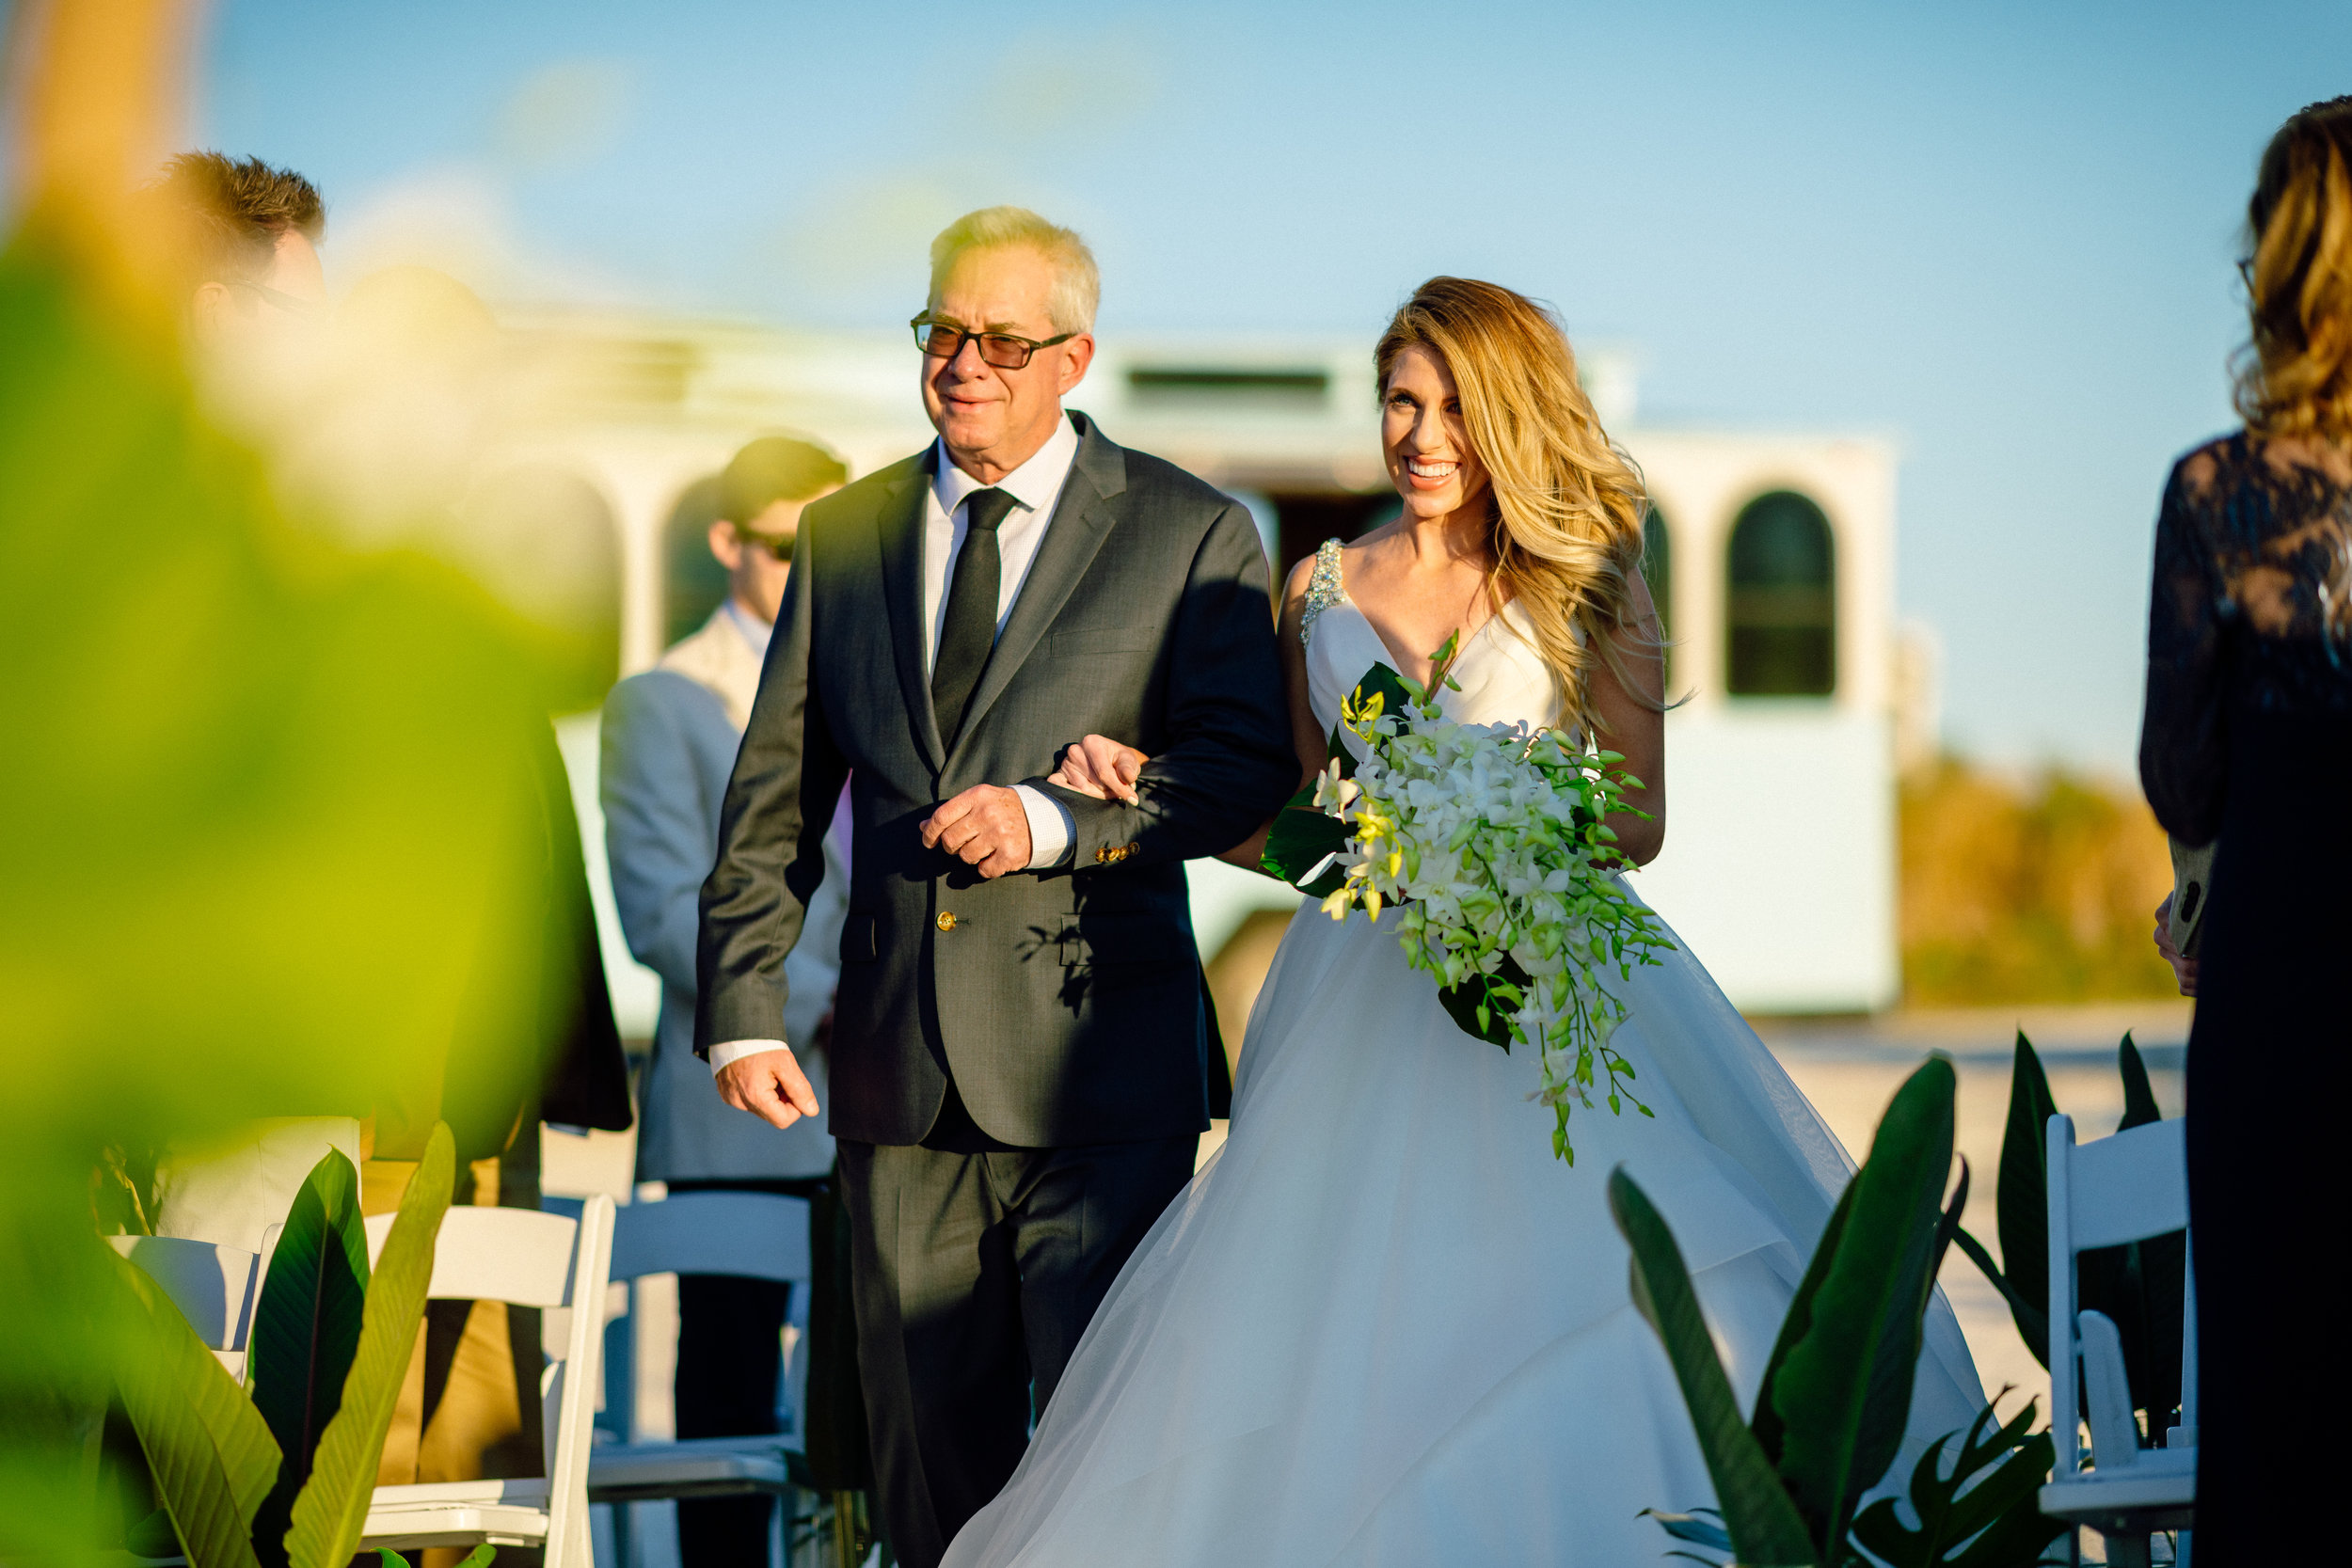 Ceremony on the Beach at South Seas.jpg